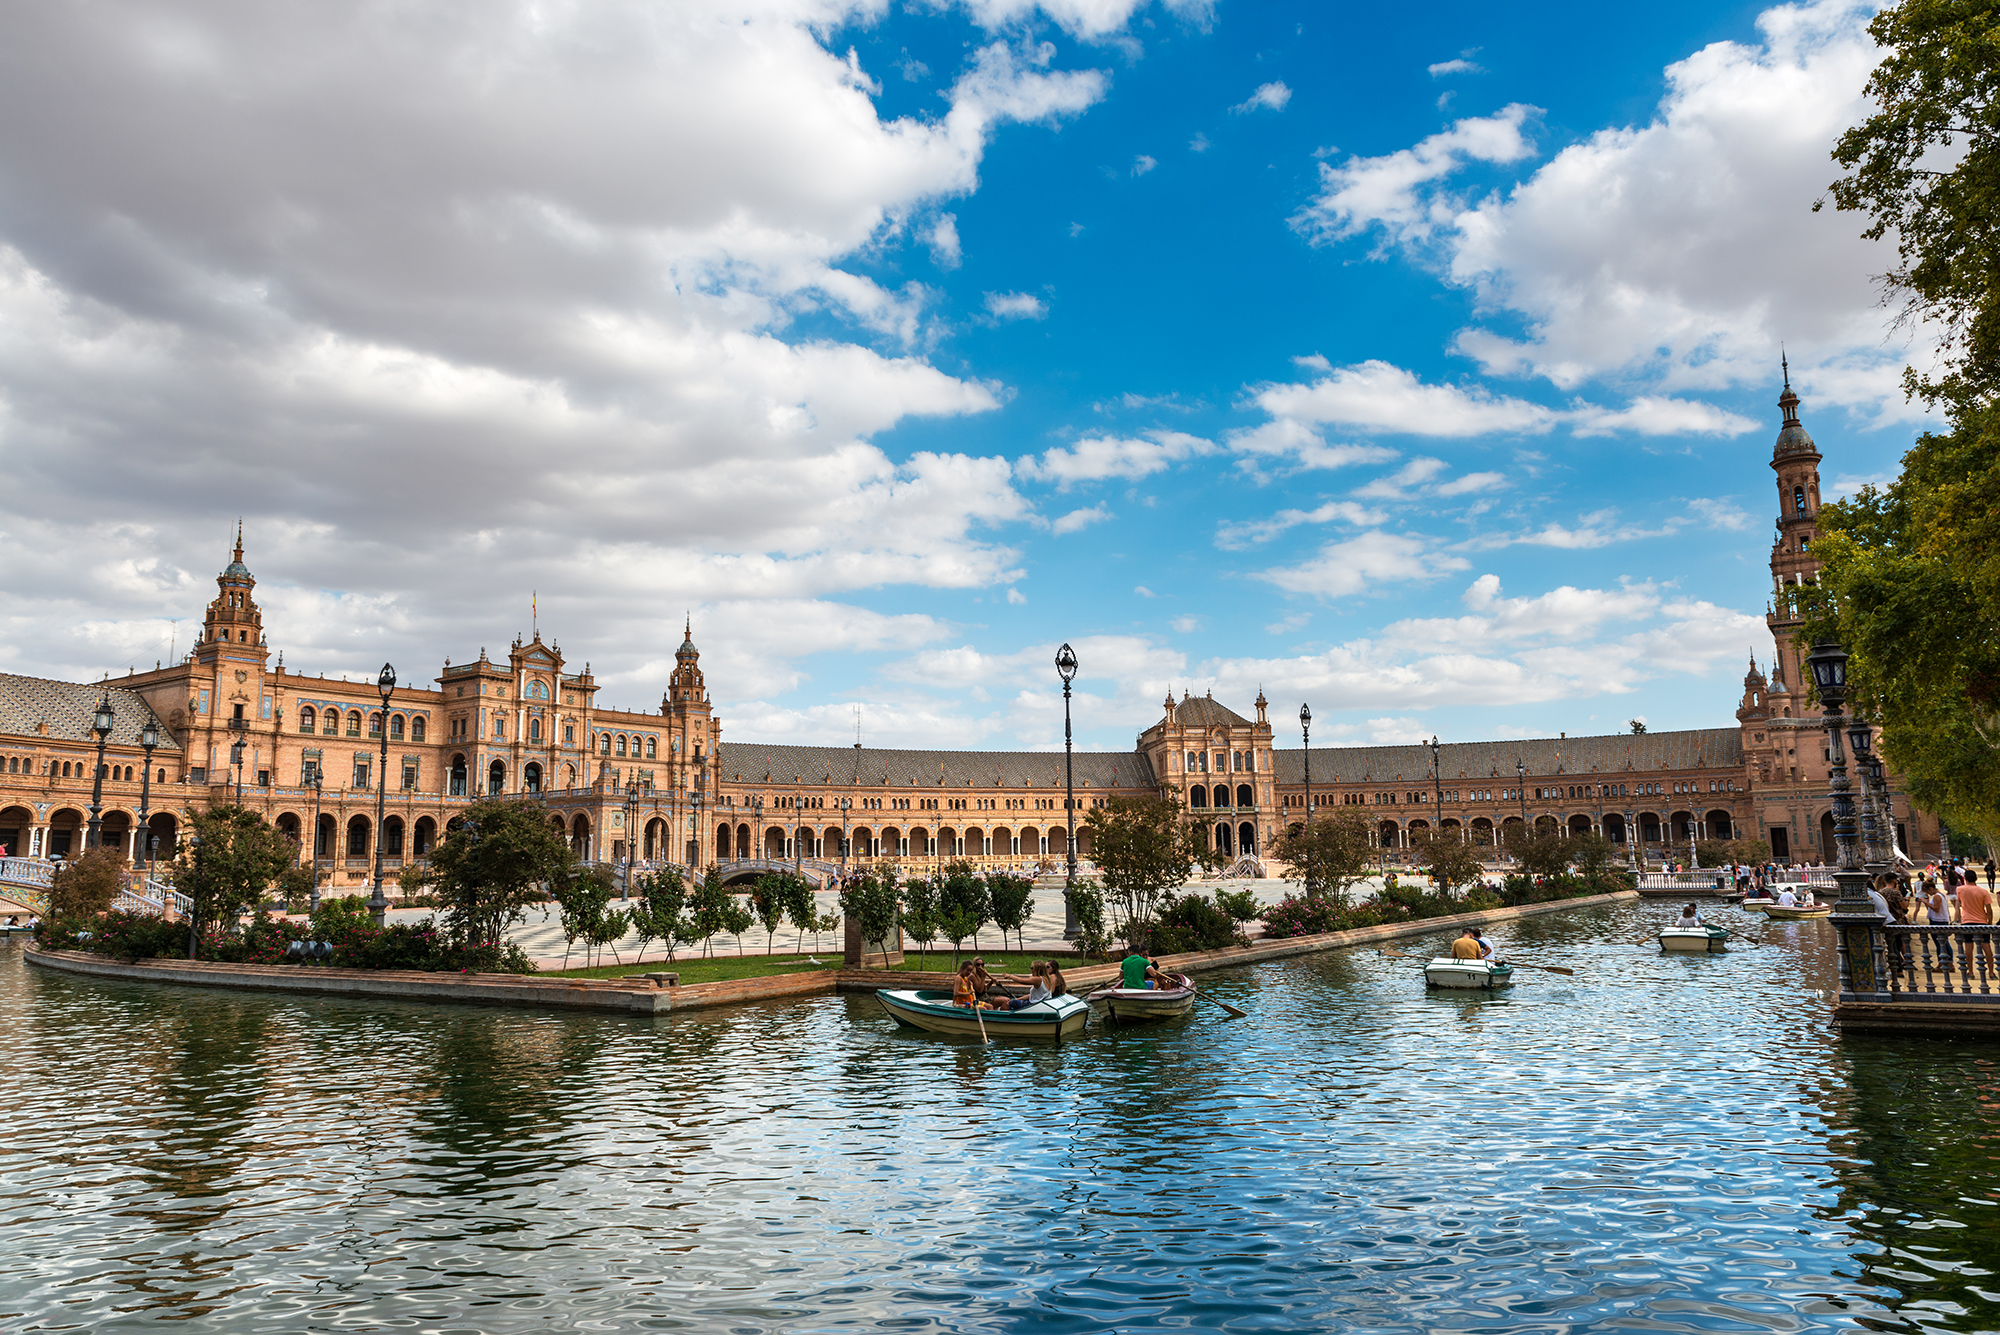 Pond and boats in the Plaza de España